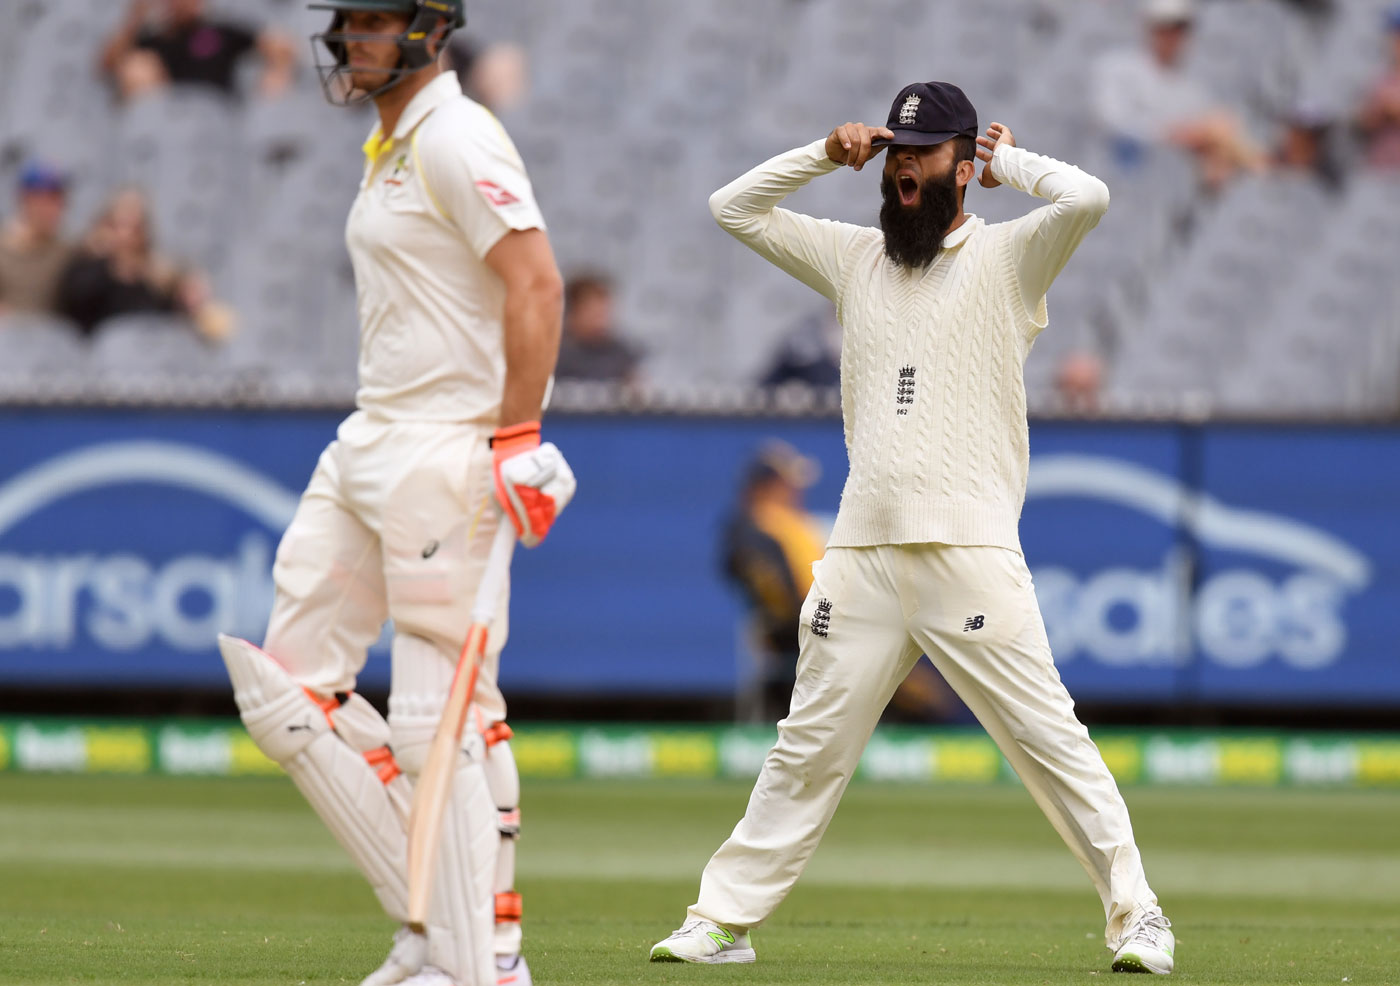 Ashes 2017/18: Injured Chris Woakes Out, Mason Crane to Debut in Sydney